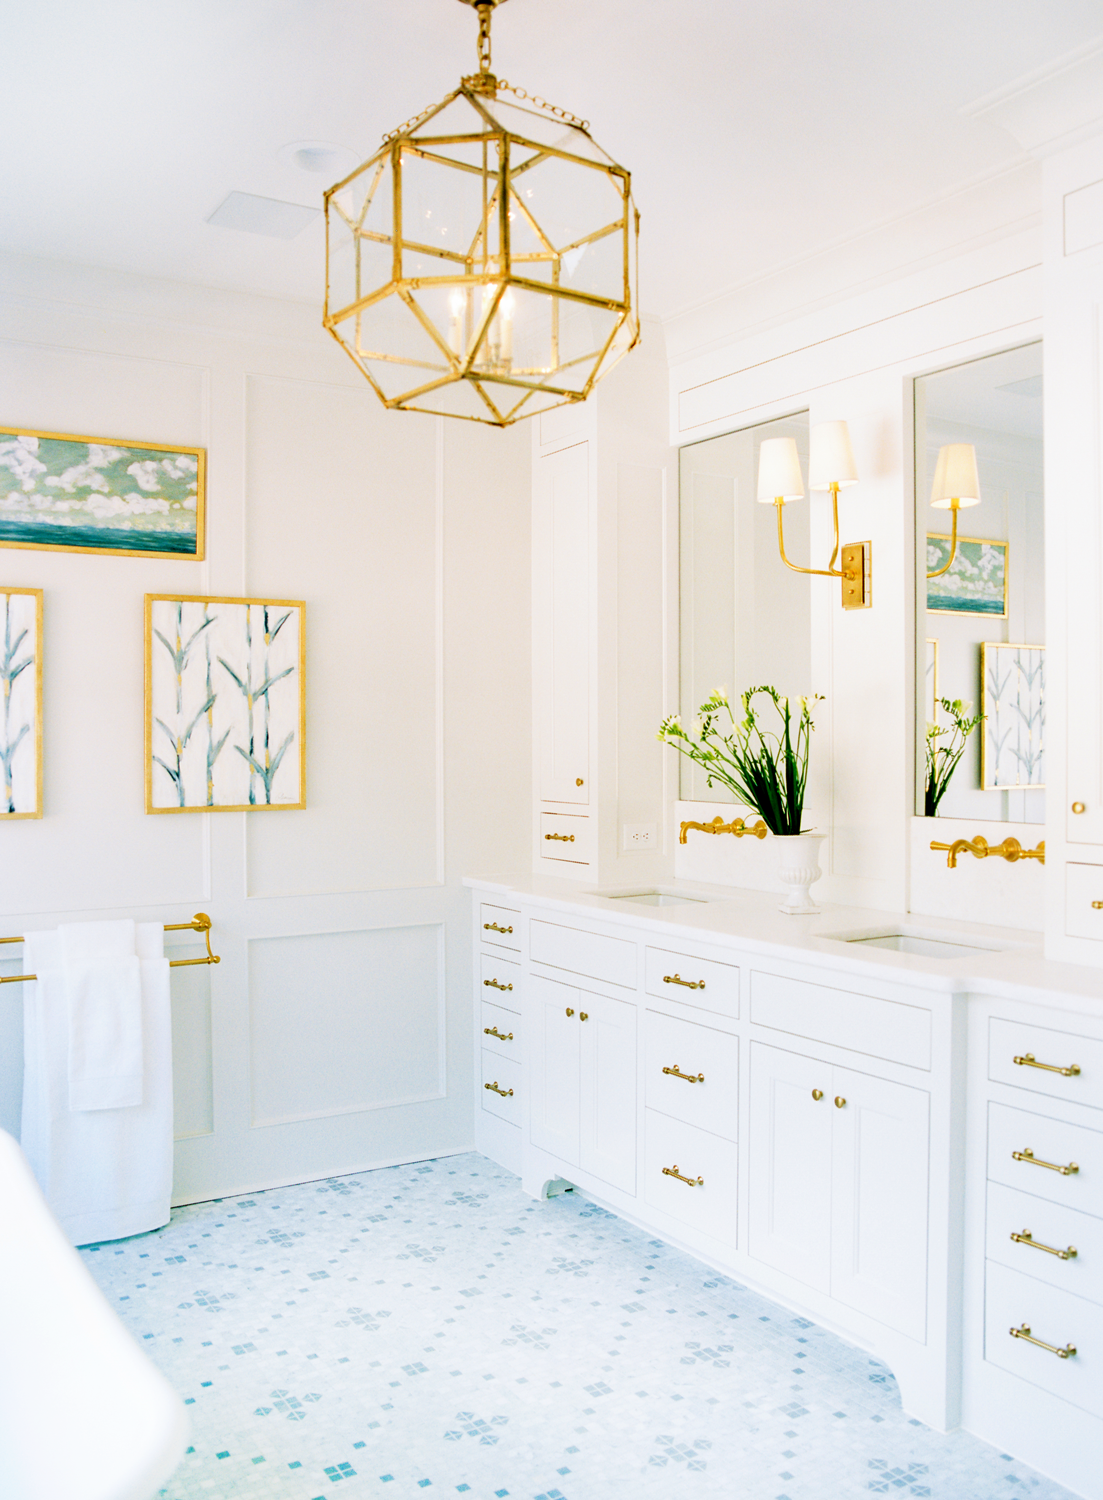 cottrell_photography_interiors-010